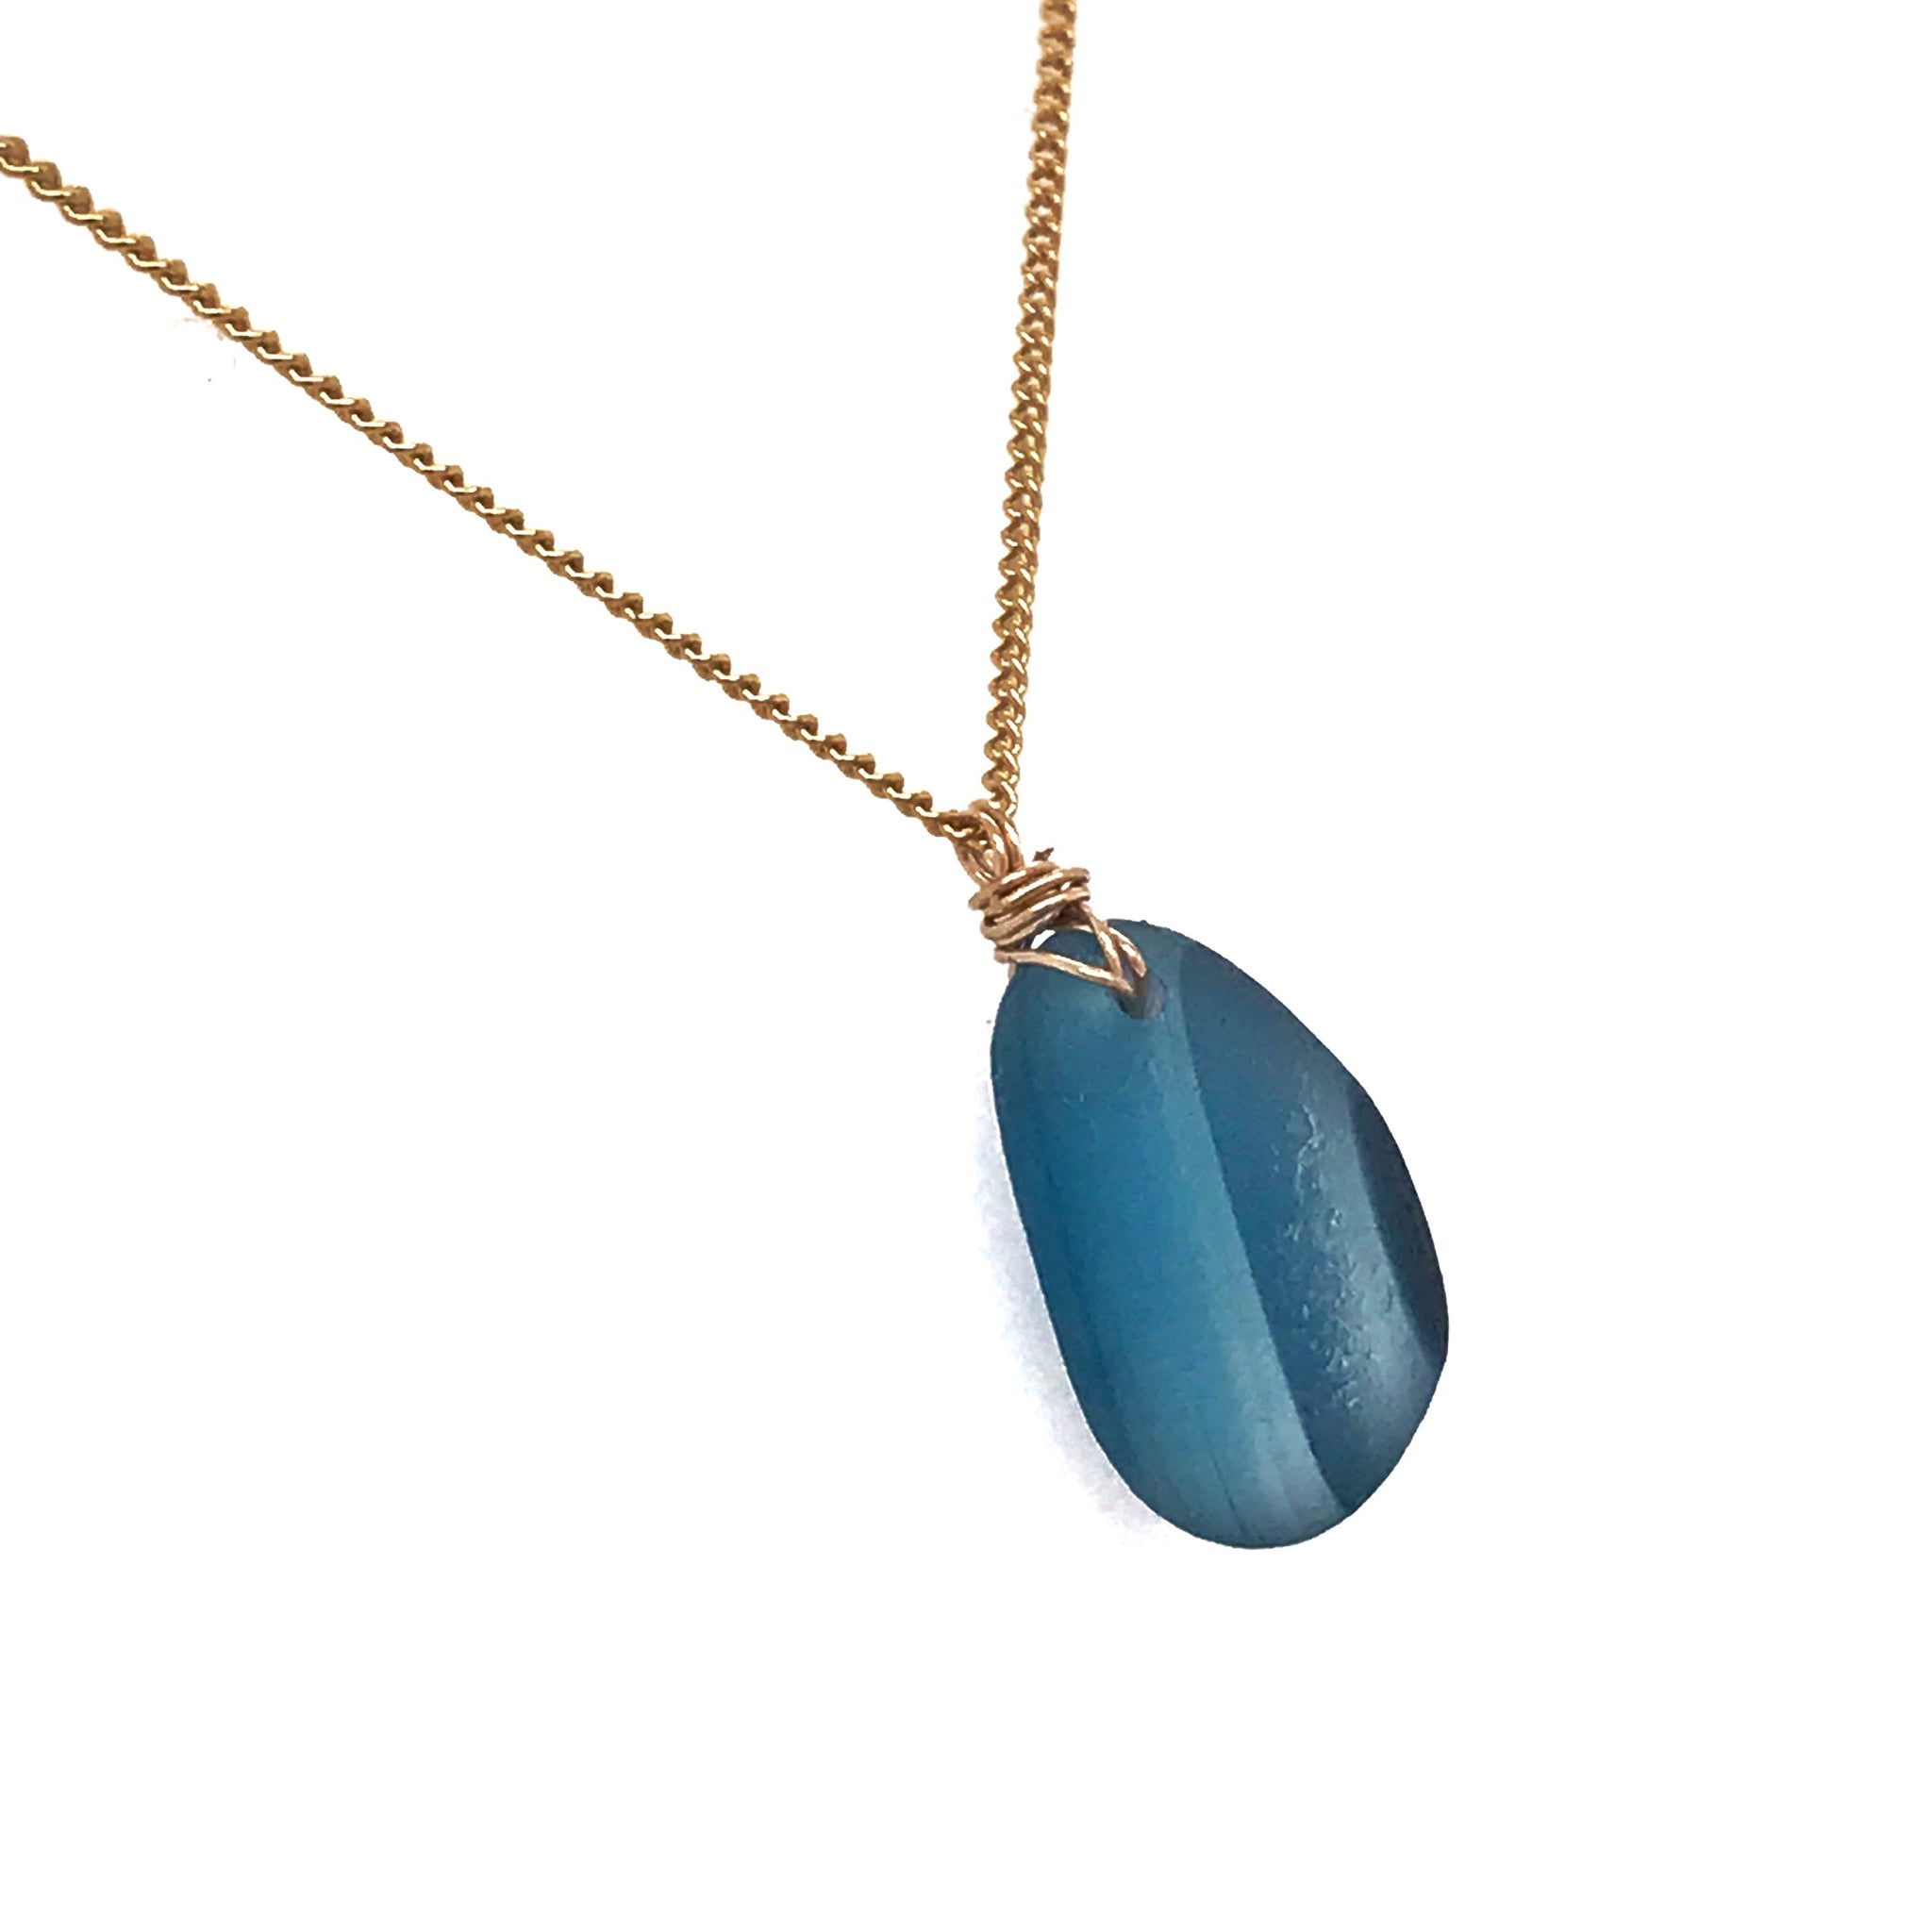 Blue-multi-seaglass-necklace-on-gold-chain-kriket-broadhurst-jewellery-Sydney